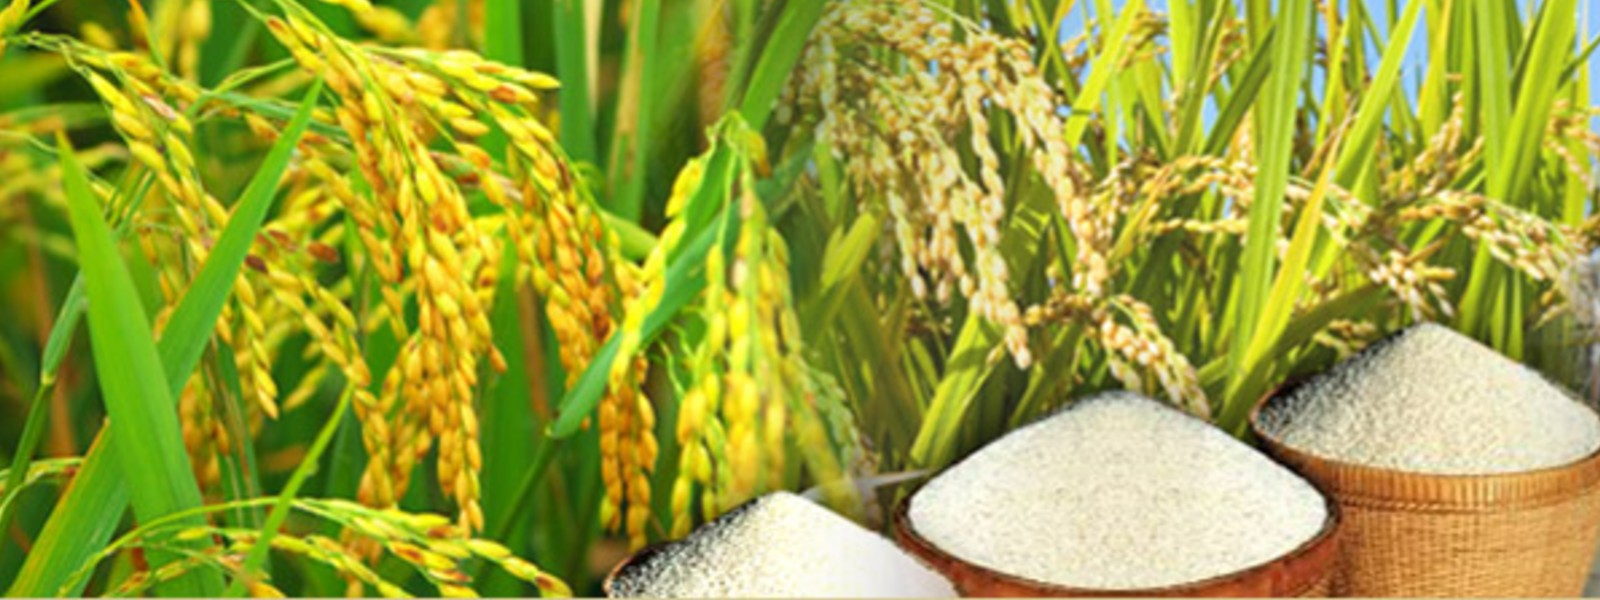 Small and Medium Rice Mills release stocks to domestic market